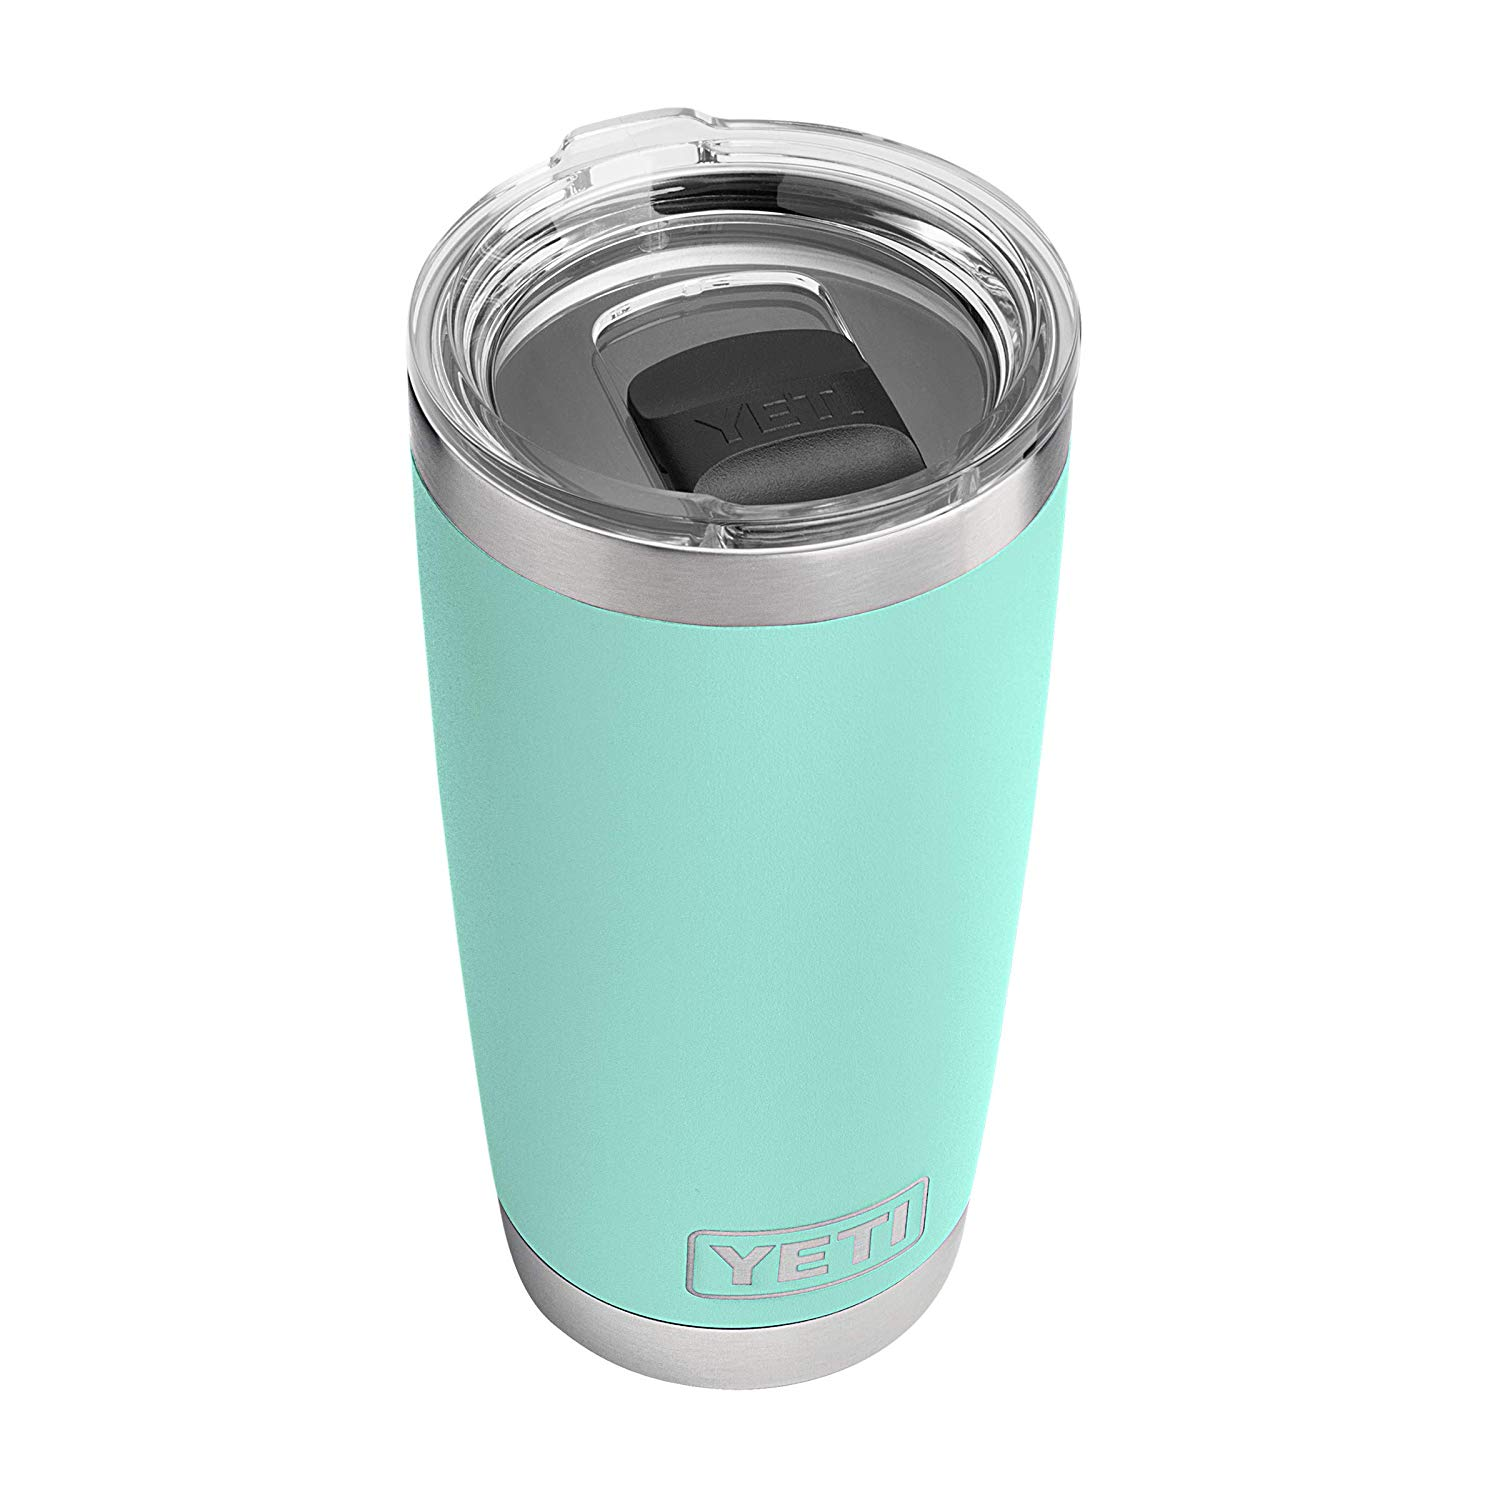 YETI Rambler 20 oz Stainless Steel Vacuum Insulated Tumbler w/MagSlider Lid, Various Color Options